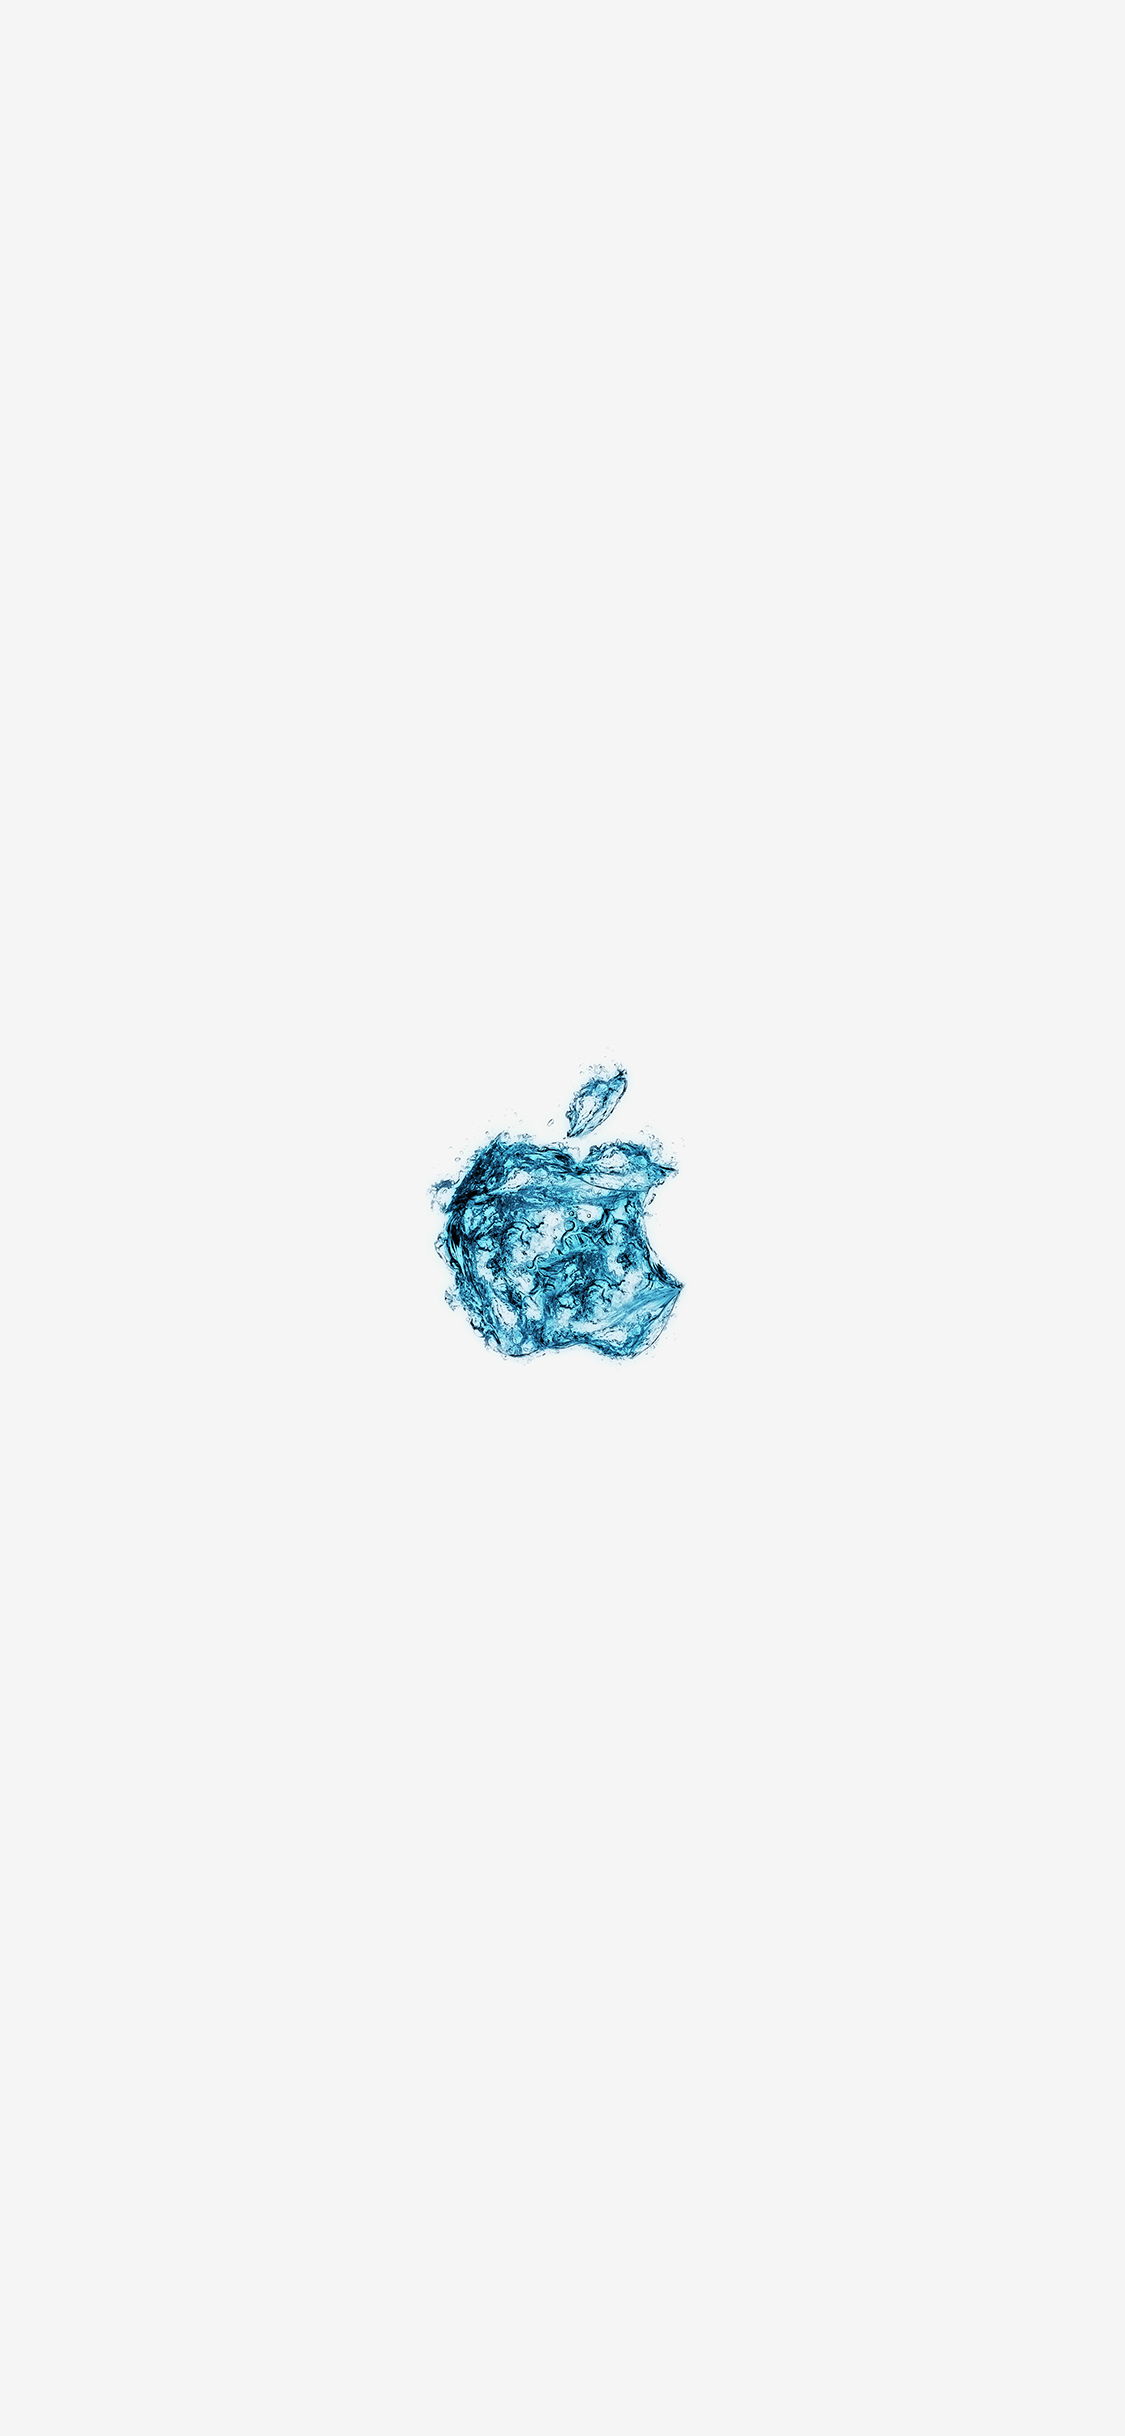 iPhoneXpapers.com-Apple-iPhone-wallpaper-at08-apple-logo-water-white-blue-art-illustration